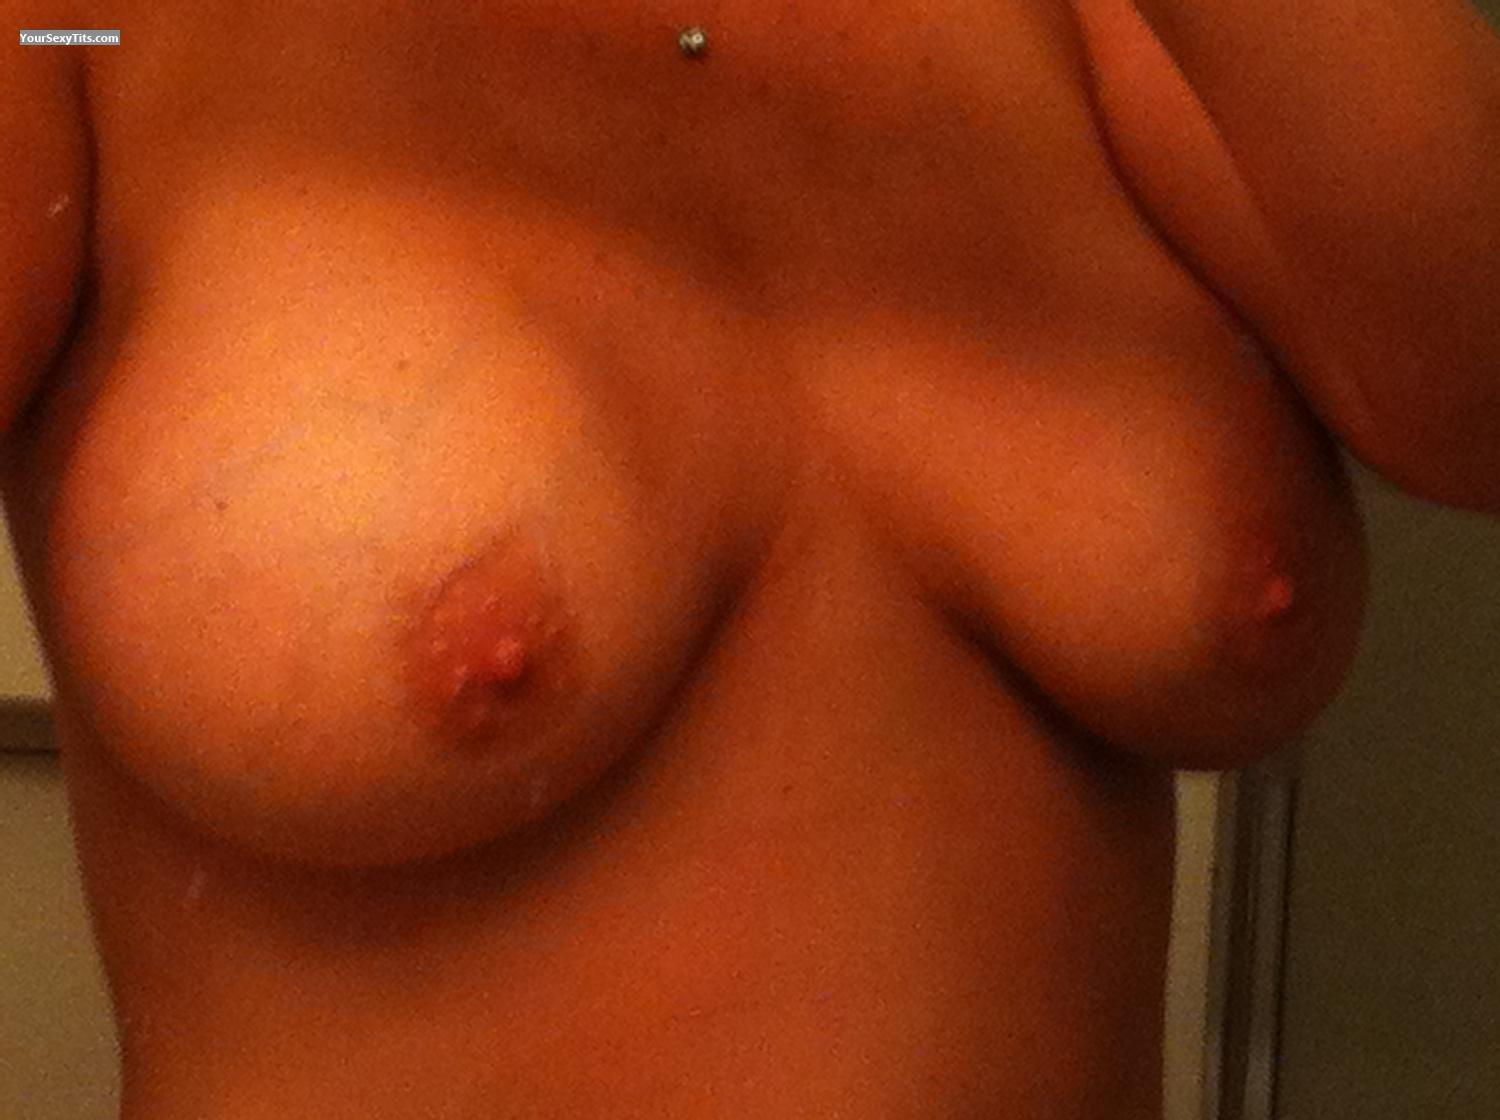 Tit Flash: My Very Big Tits By IPhone (Selfie) - Gina from United States